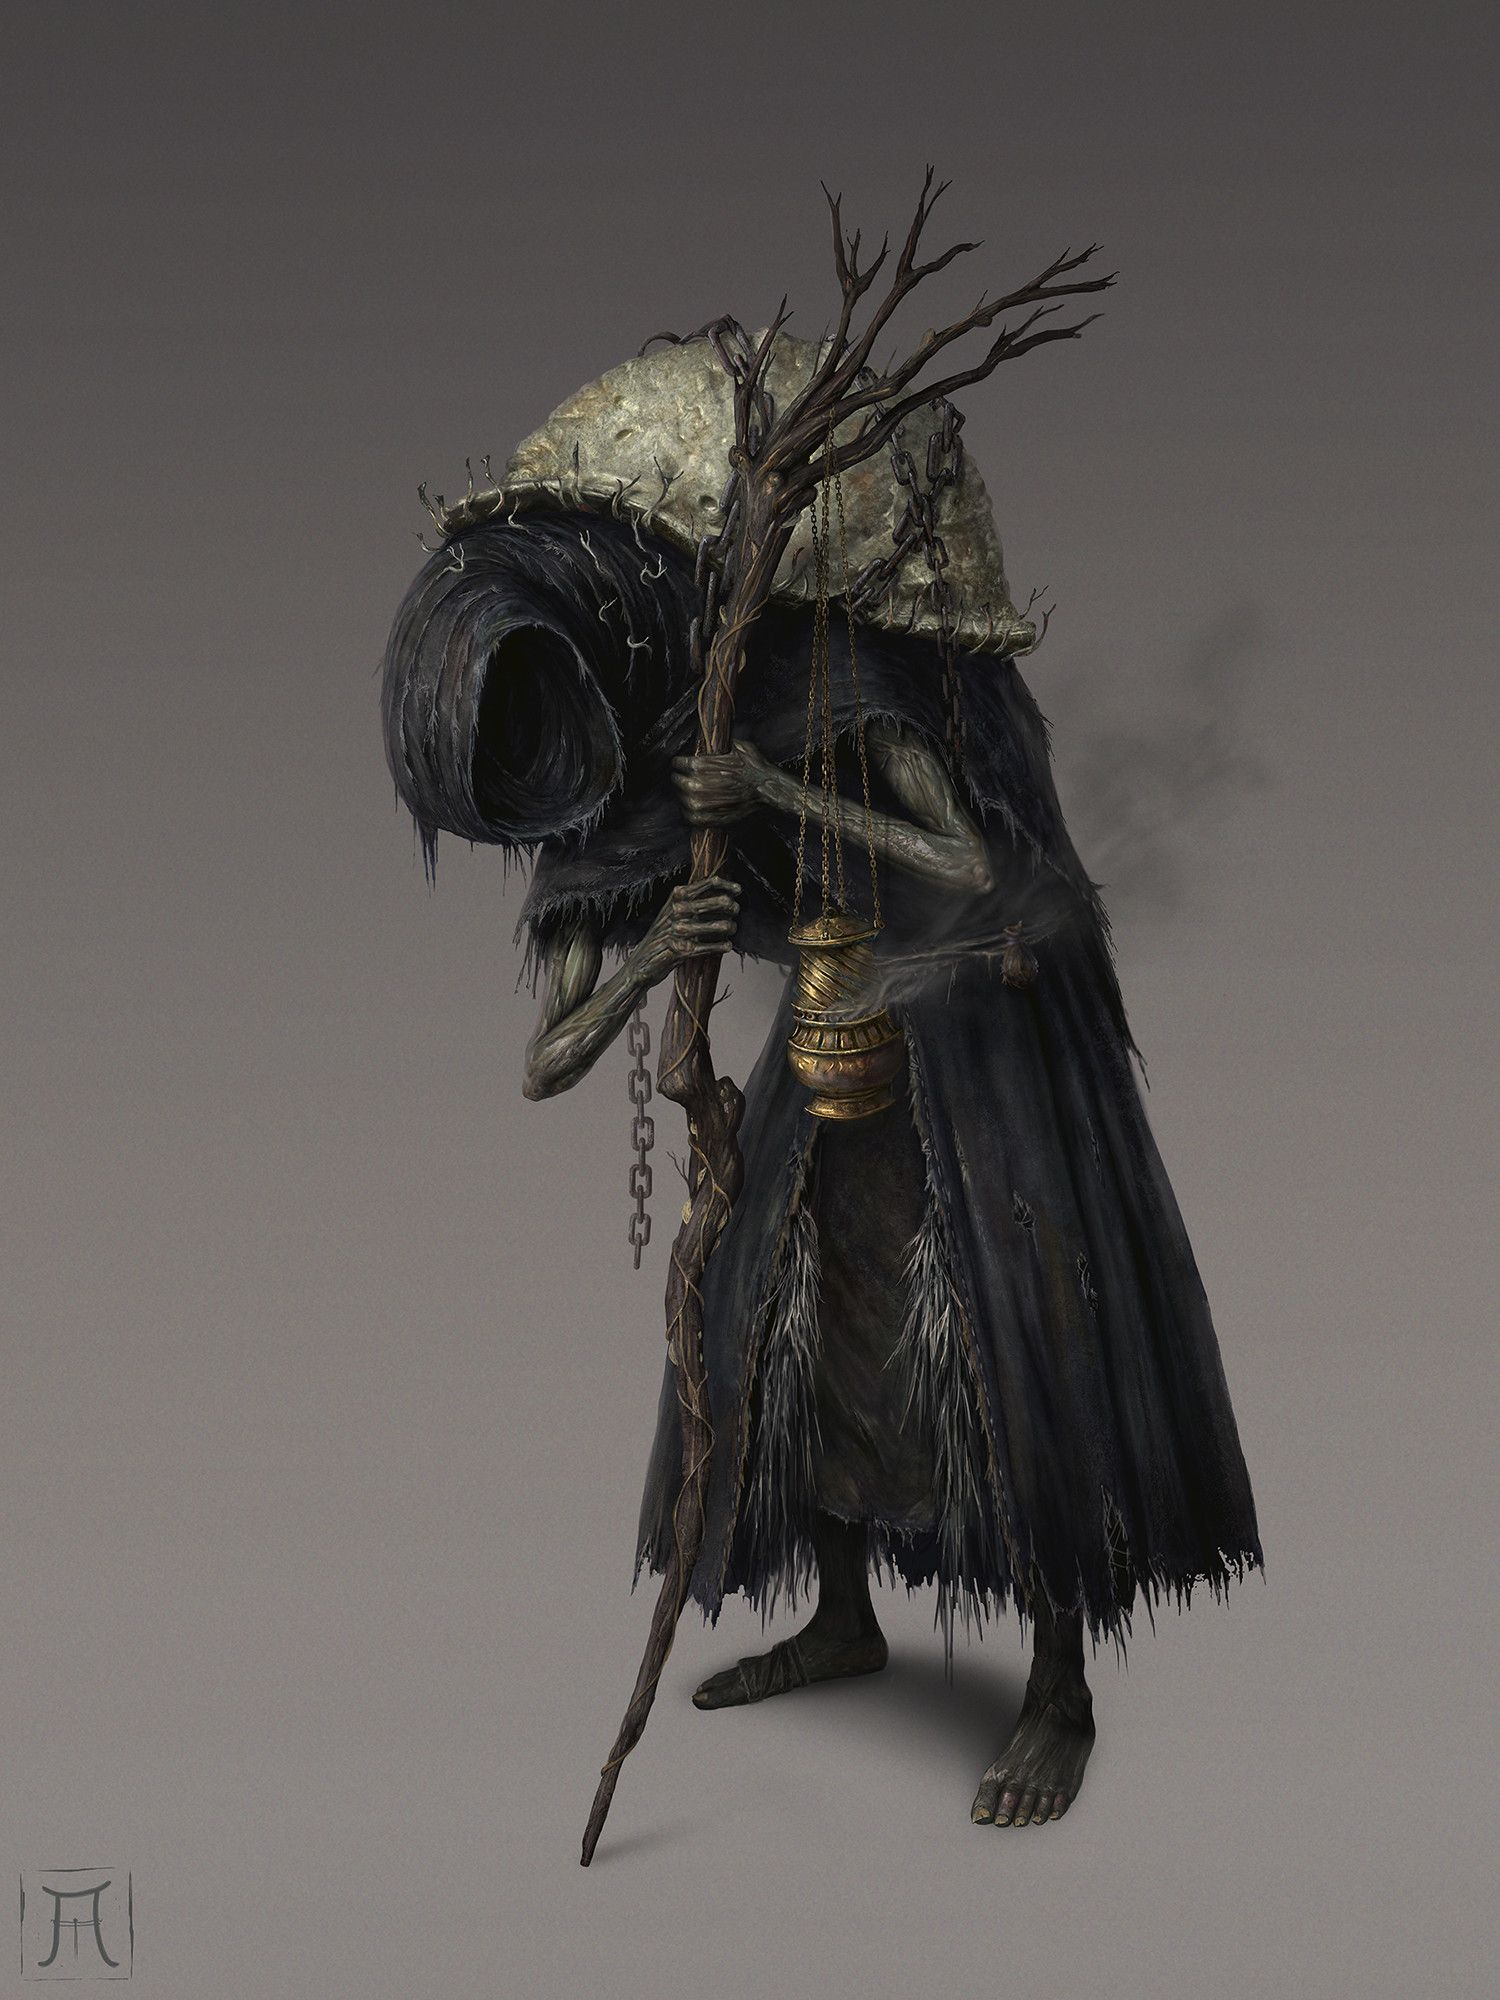 Artstation Yoel Of Londor Igor Krstic You Mean Yolo Of Londor Dark Souls Concept Art Dark Souls Art Dark Fantasy Art Share all sharing options for: art dark souls art dark fantasy art